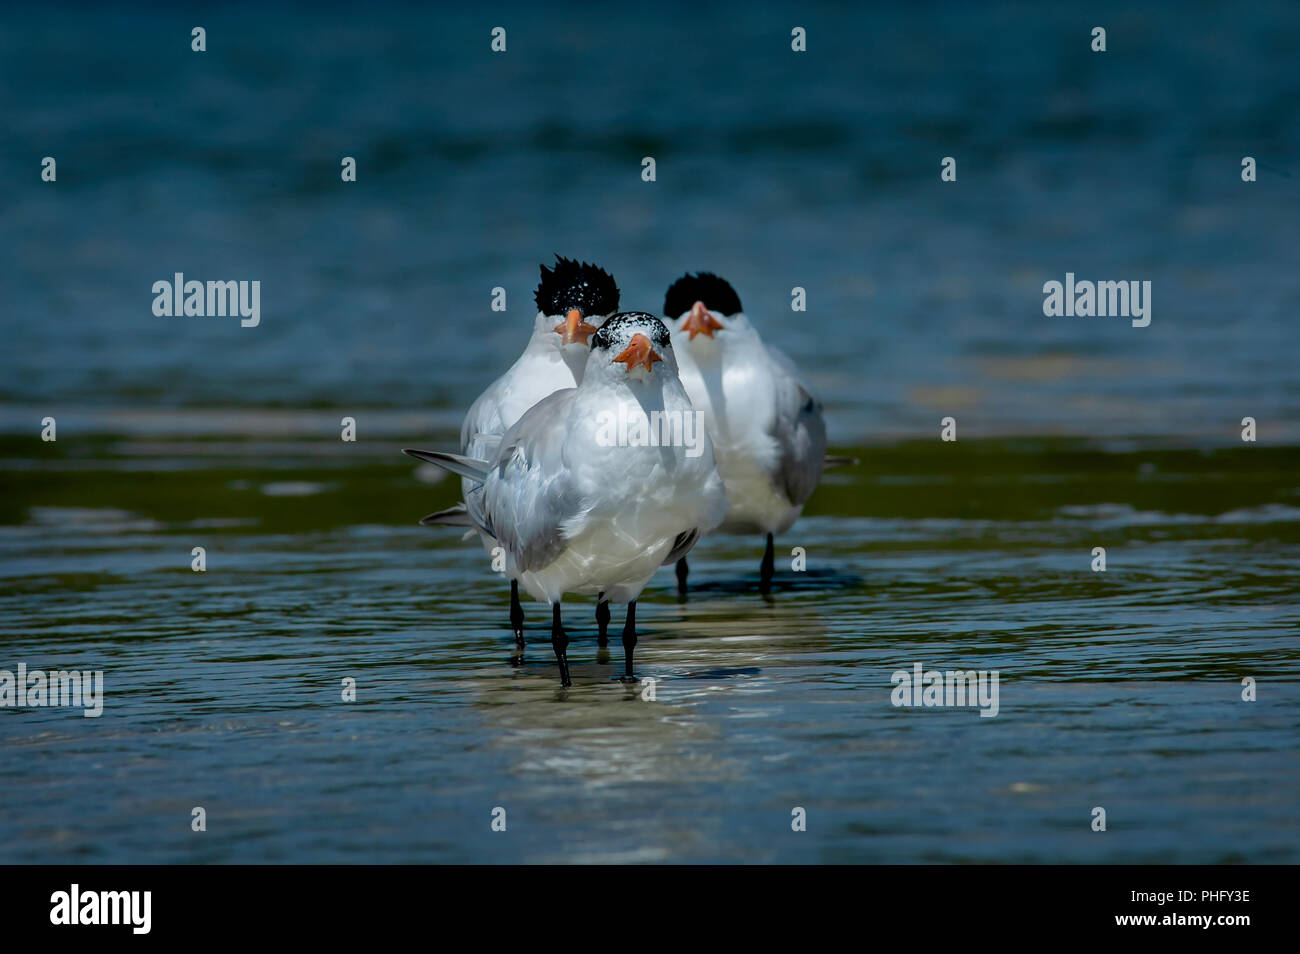 Three royal terns group together in a funny trio wading in shallow blue ocean water. - Stock Image